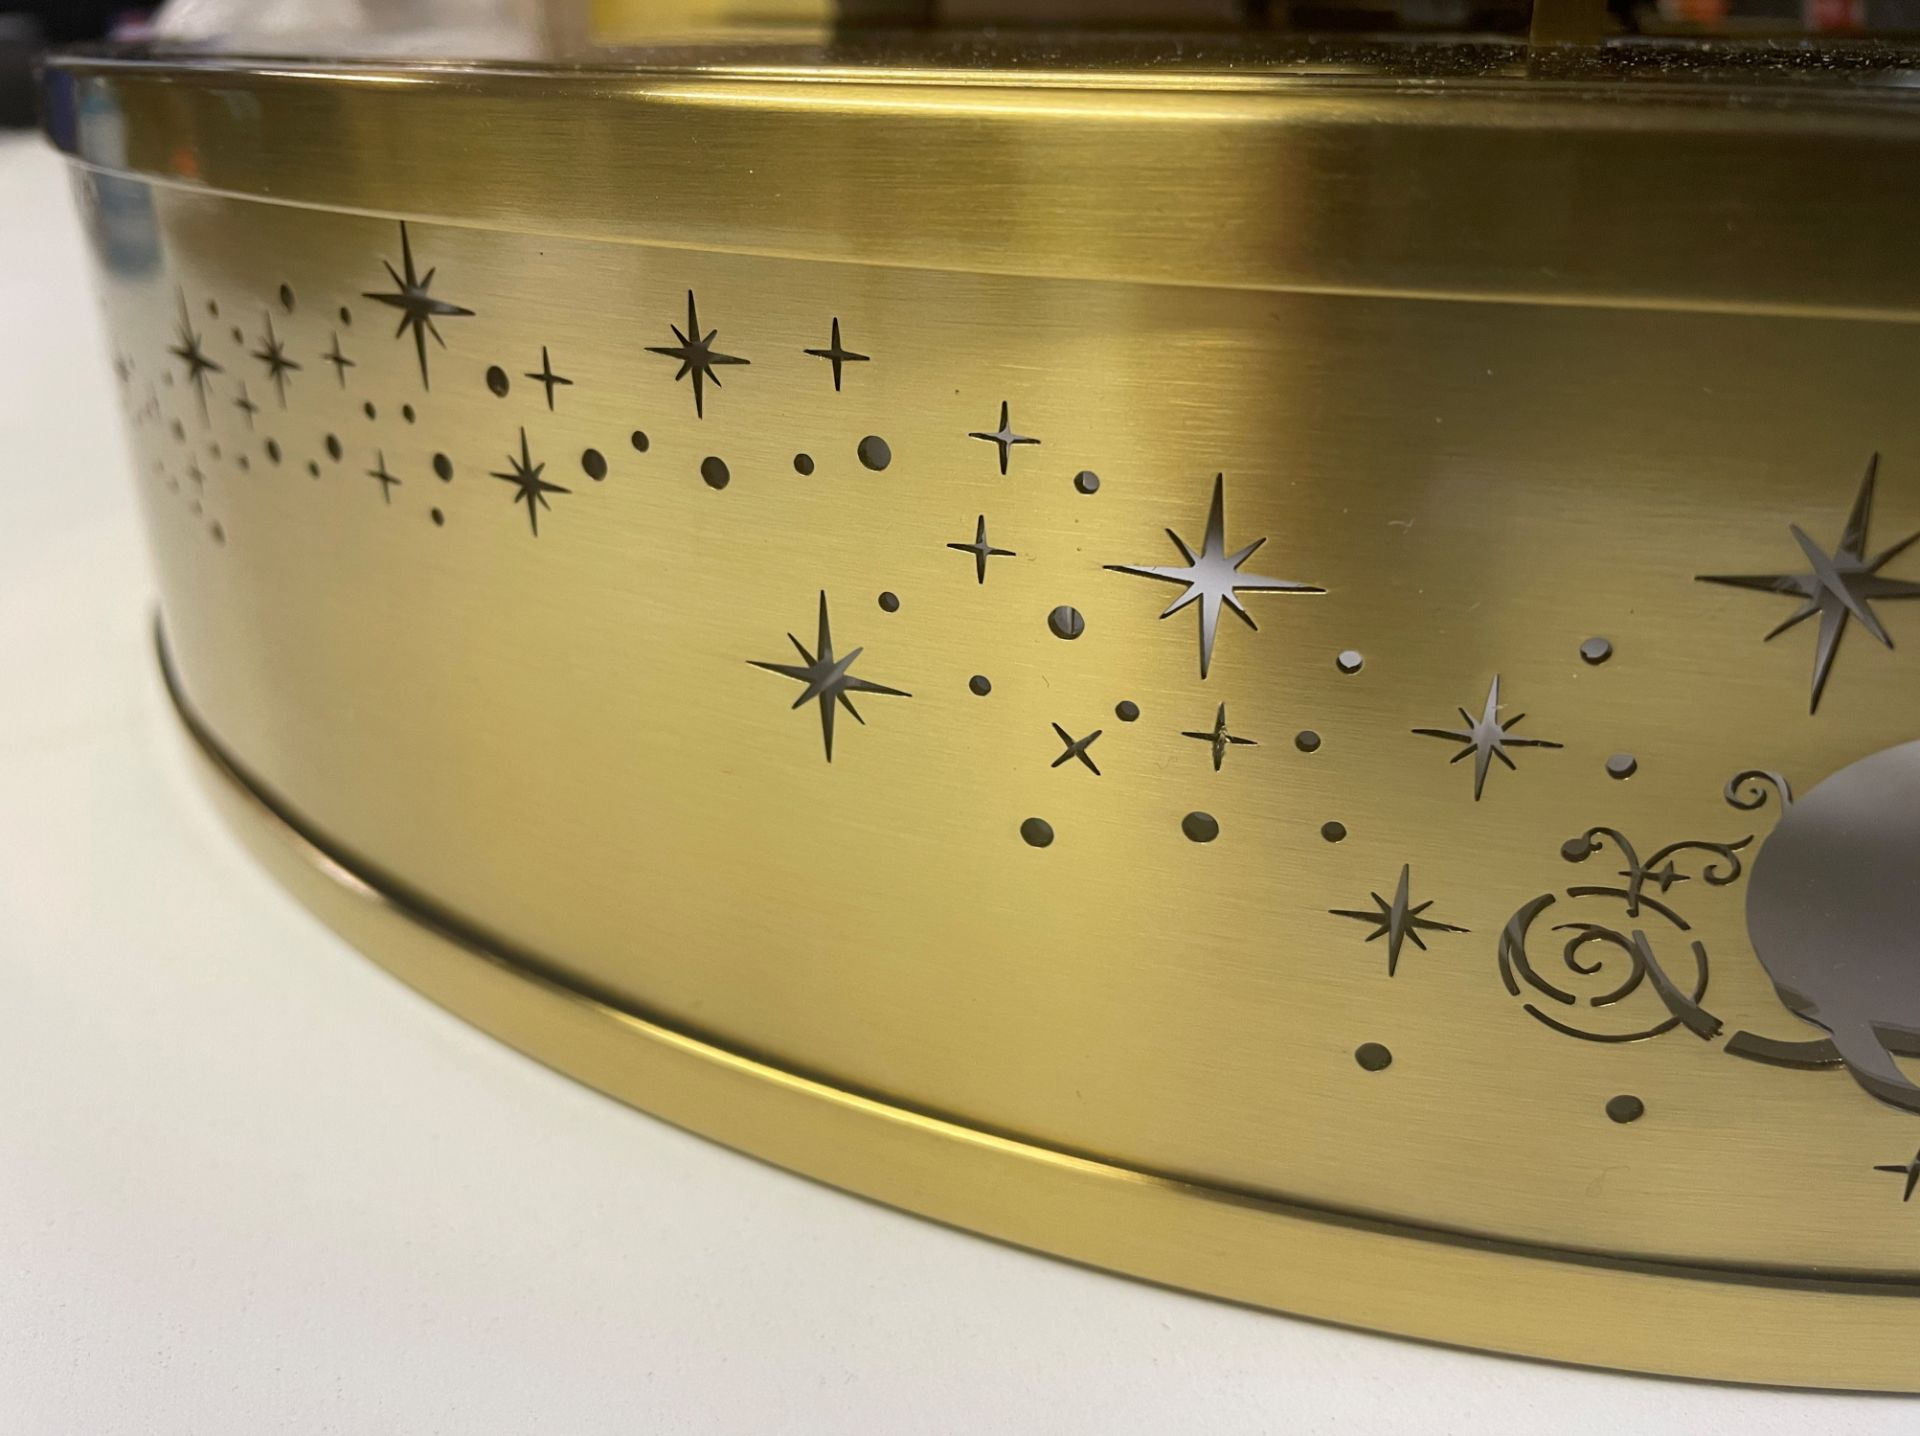 1 x Chelsom 'Disney' New Build Brushed Brass Ceiling Arcade Pendent Light Fitting - Sample we under - Image 9 of 14